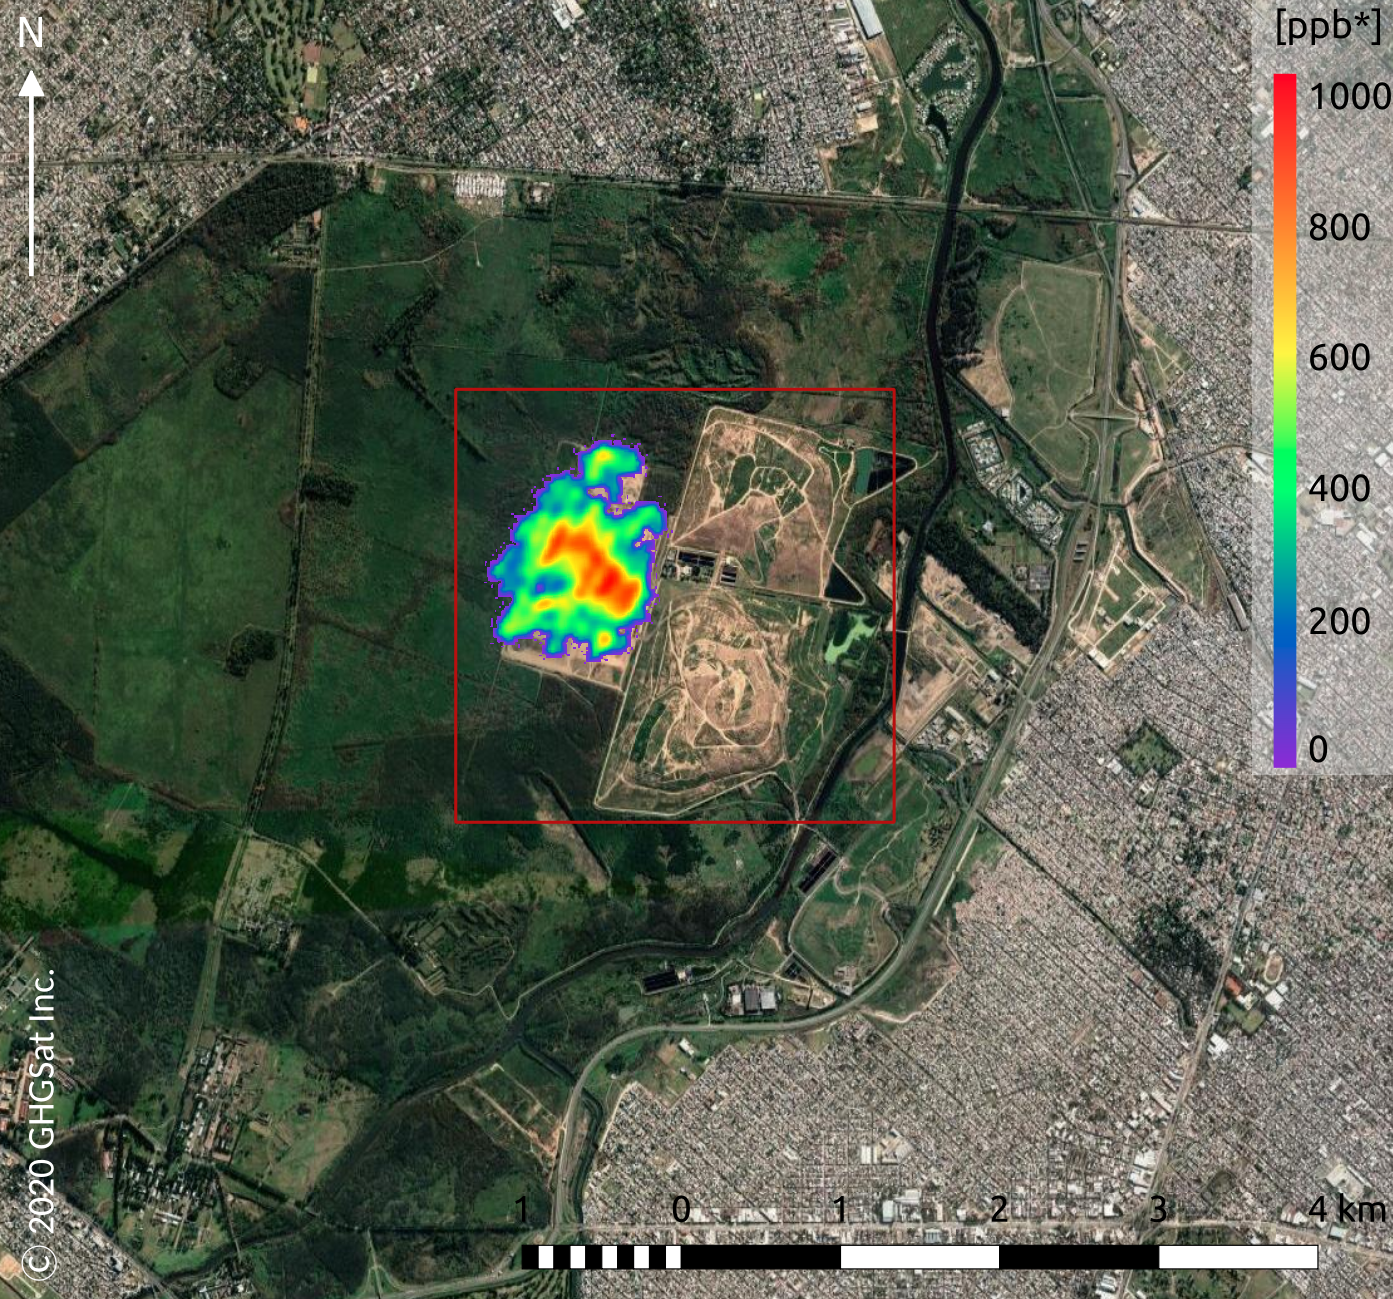 Methane_from_landfill_site_in_Argentina_imaged_by_GHGSat_s_Claire_edit.png